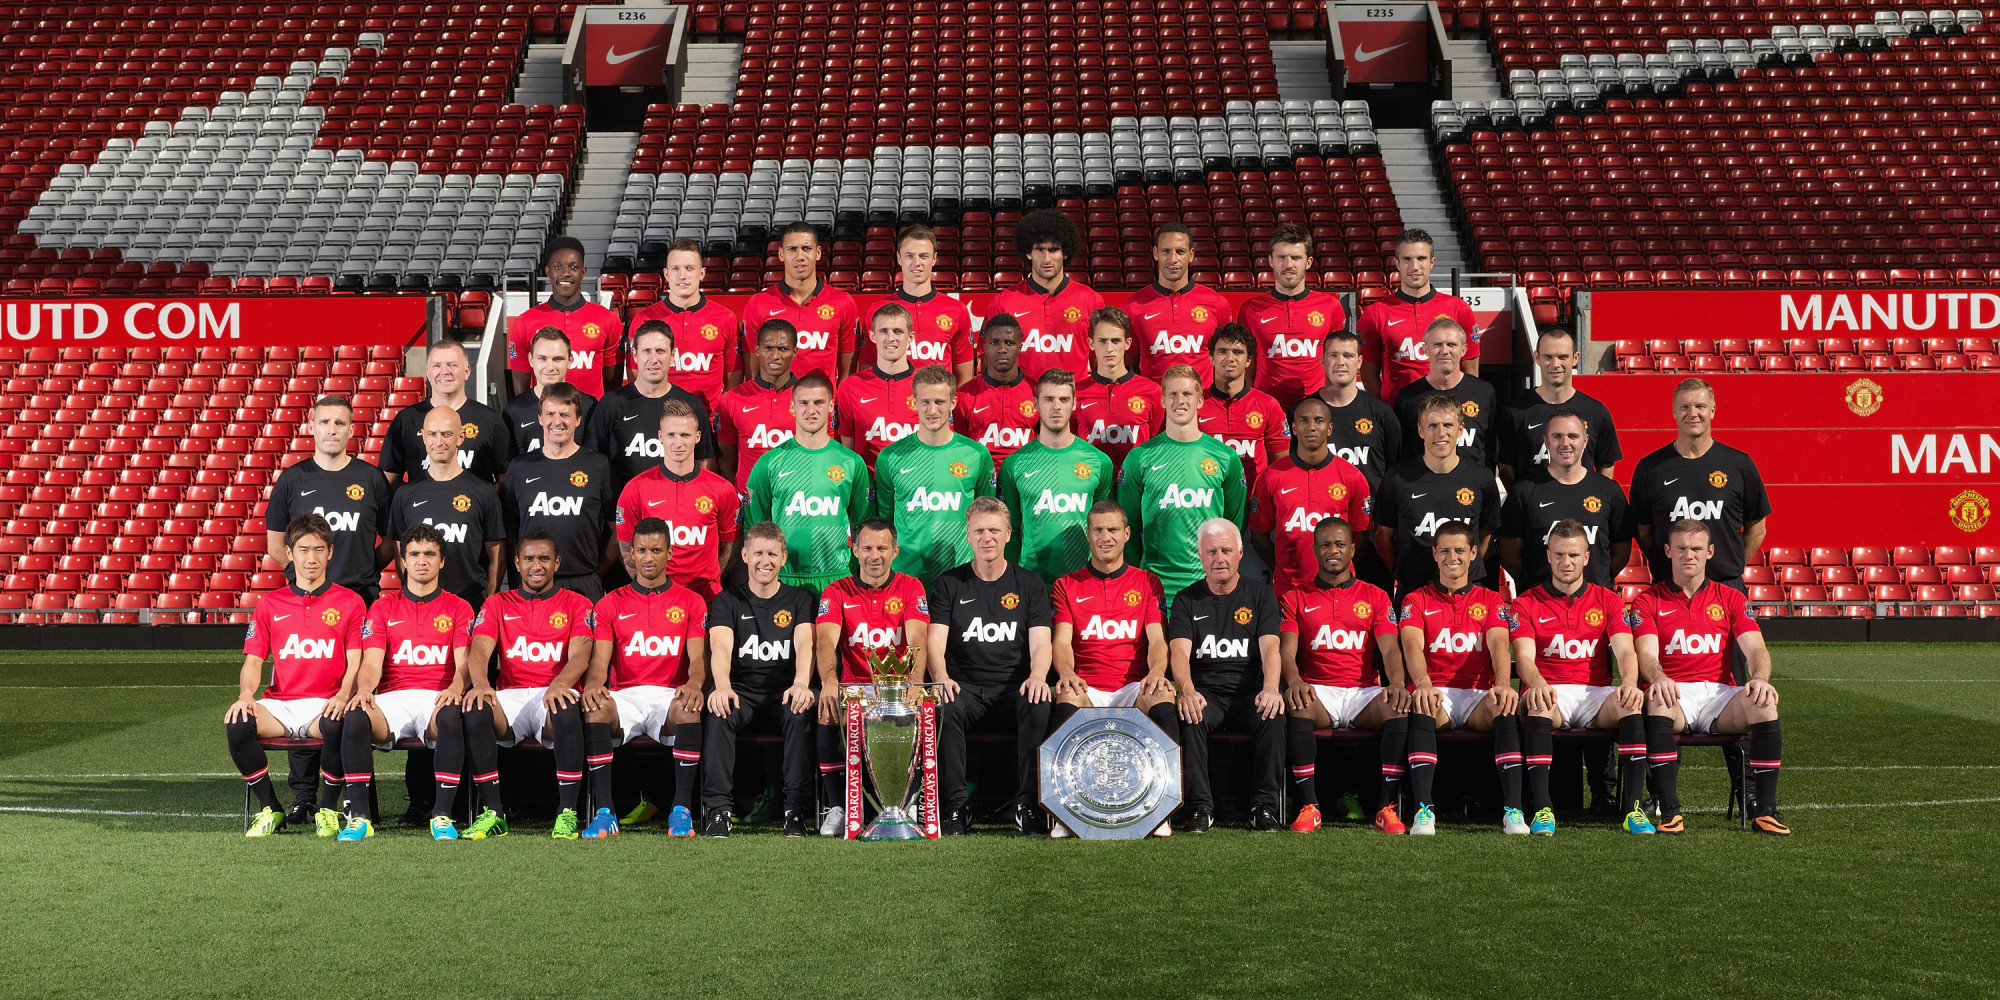 Man Utd: Manchester United's First Squad Photos Through The Years